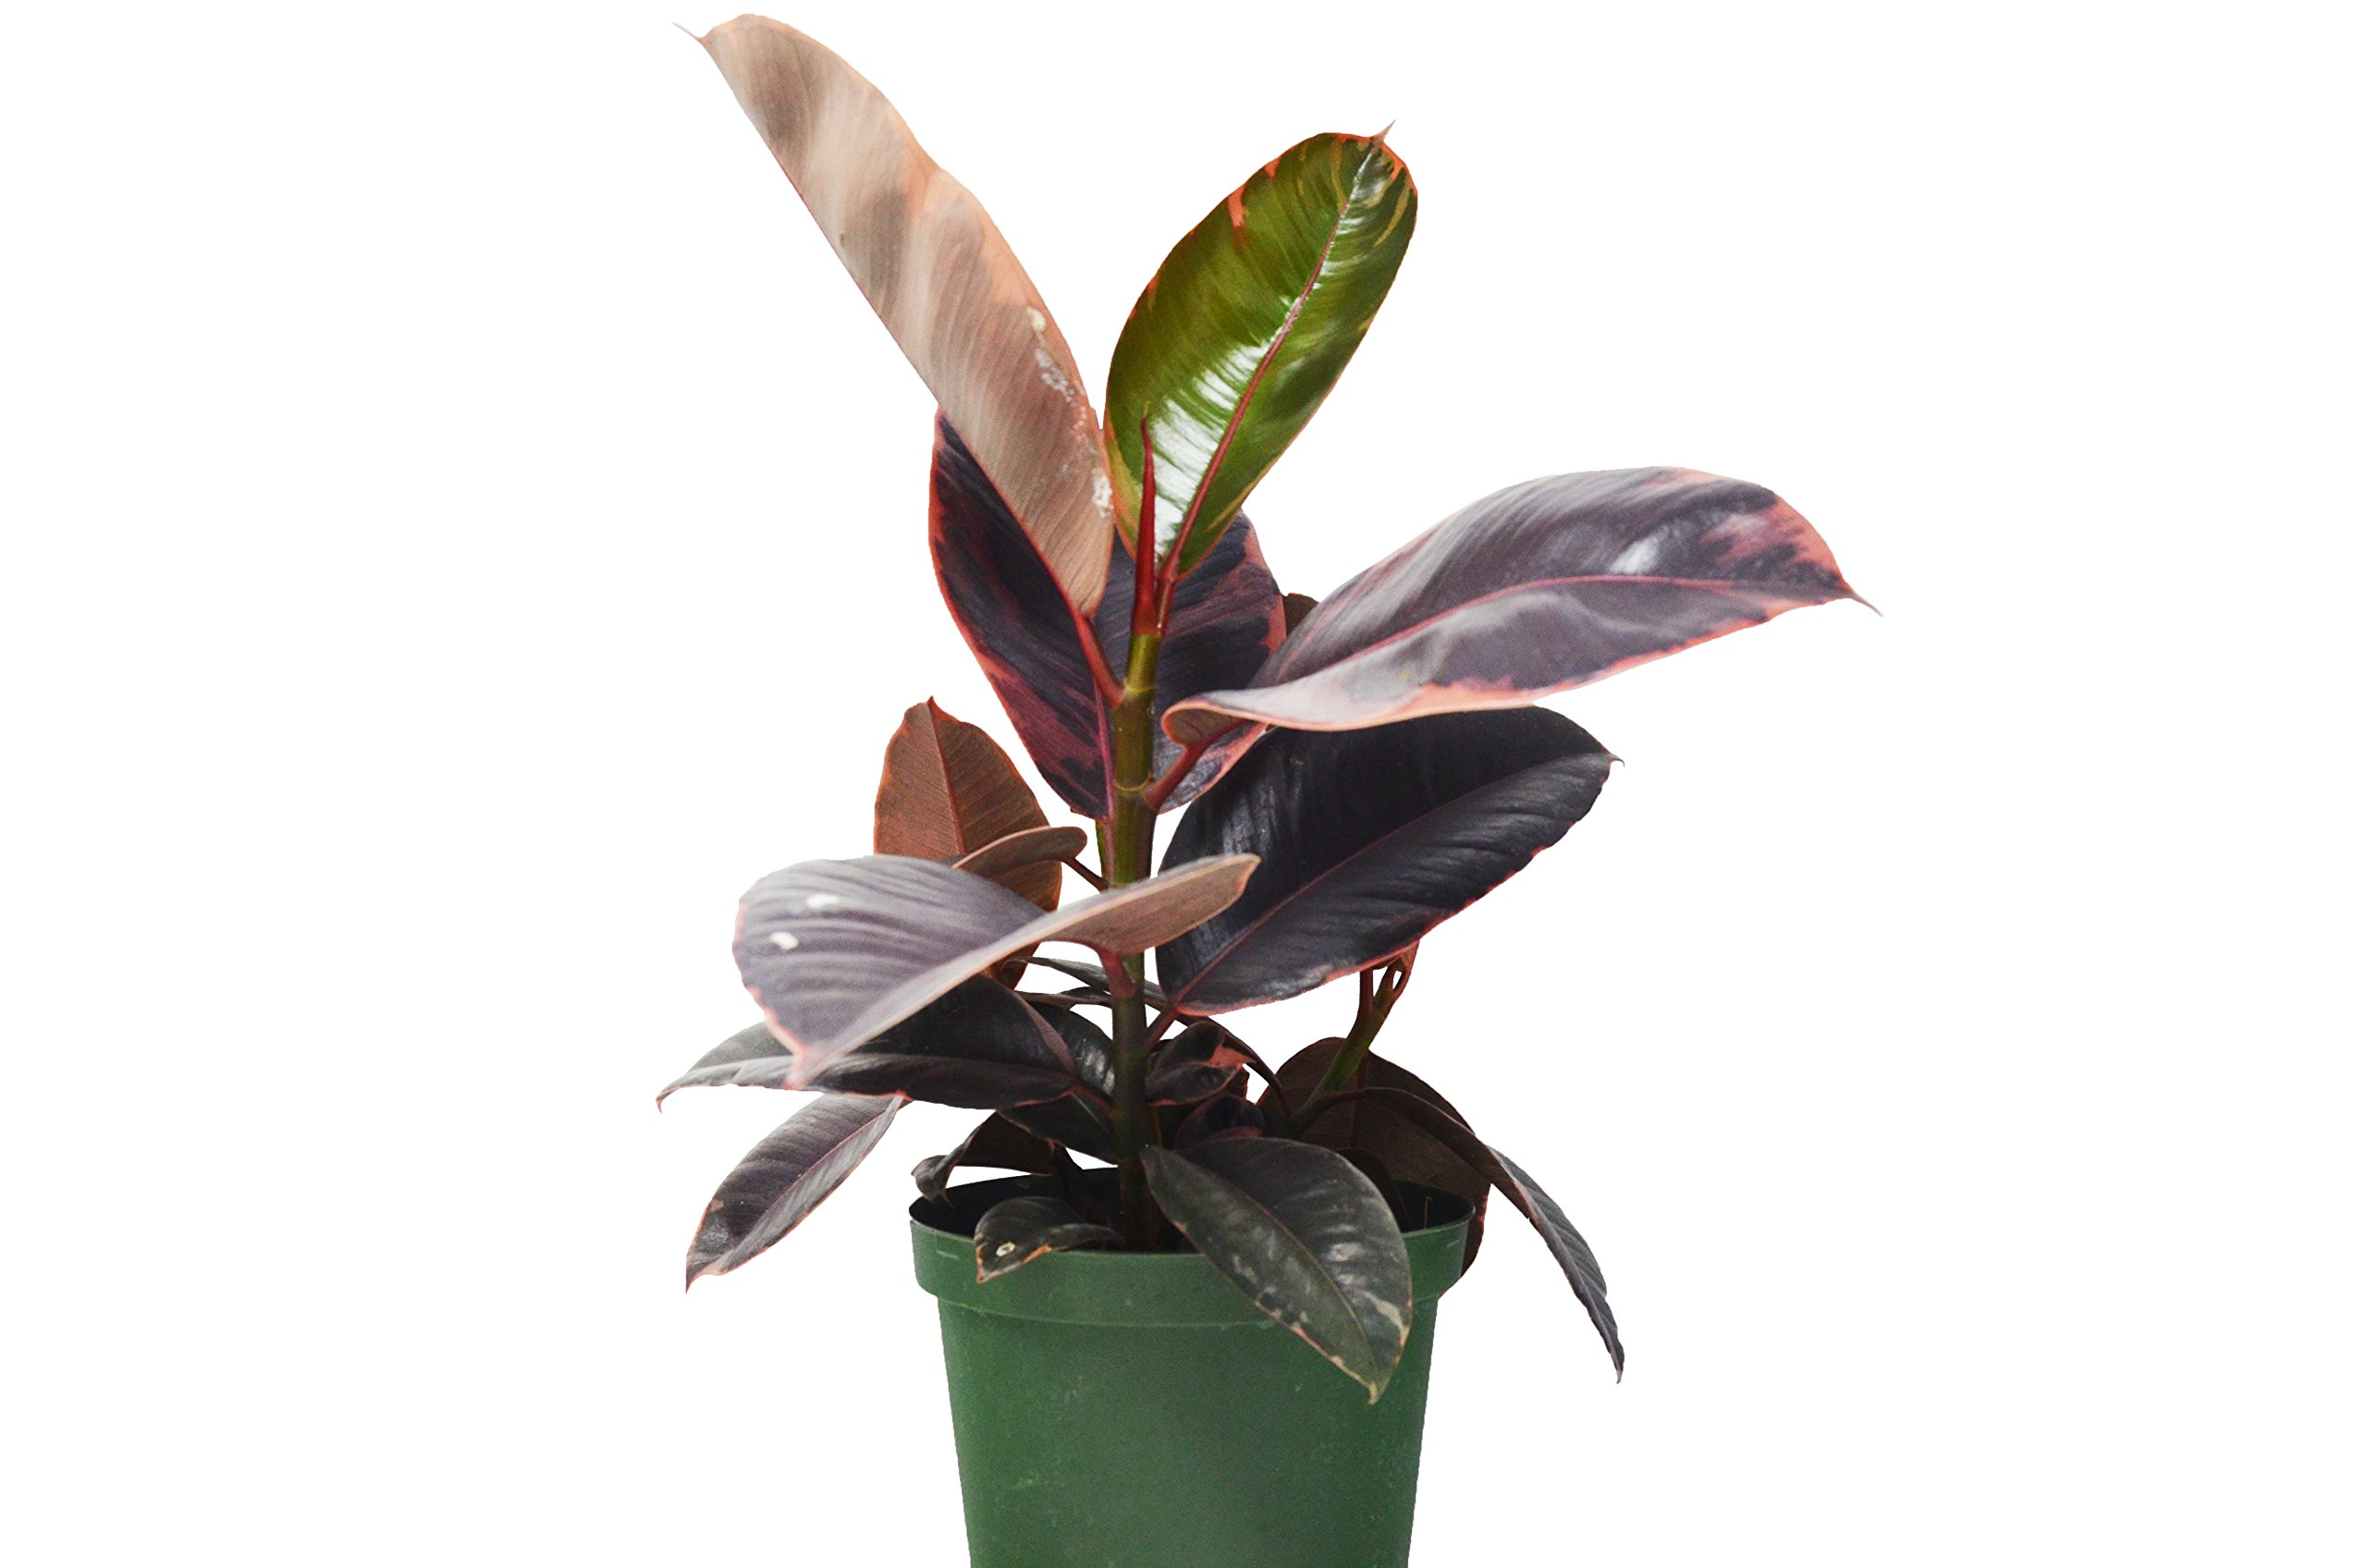 Ficus 'Ruby Pink' Rubber Plant - In 6'' Pot/12 - 18'' Tall/Live Plant/FREE Care Guide/House Plant/EASY CARE